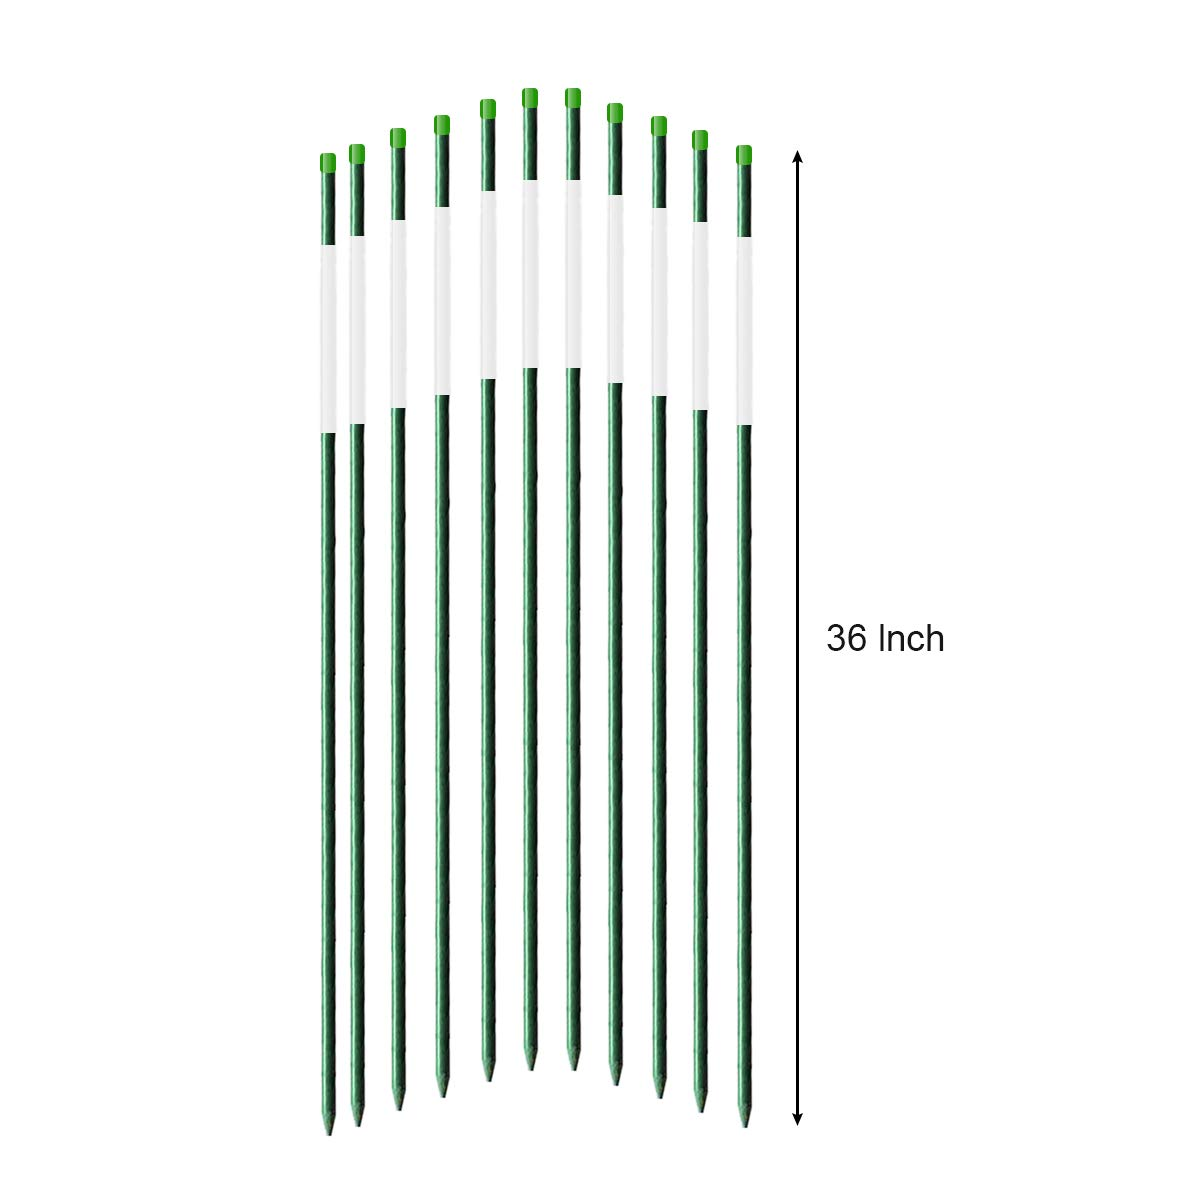 FiberMarker Reflective Driveway Markers 72-Inch Dark Green 20-Pack 5/16-Inch Dia Solid Driveway Poles for Easy Visibility at Night